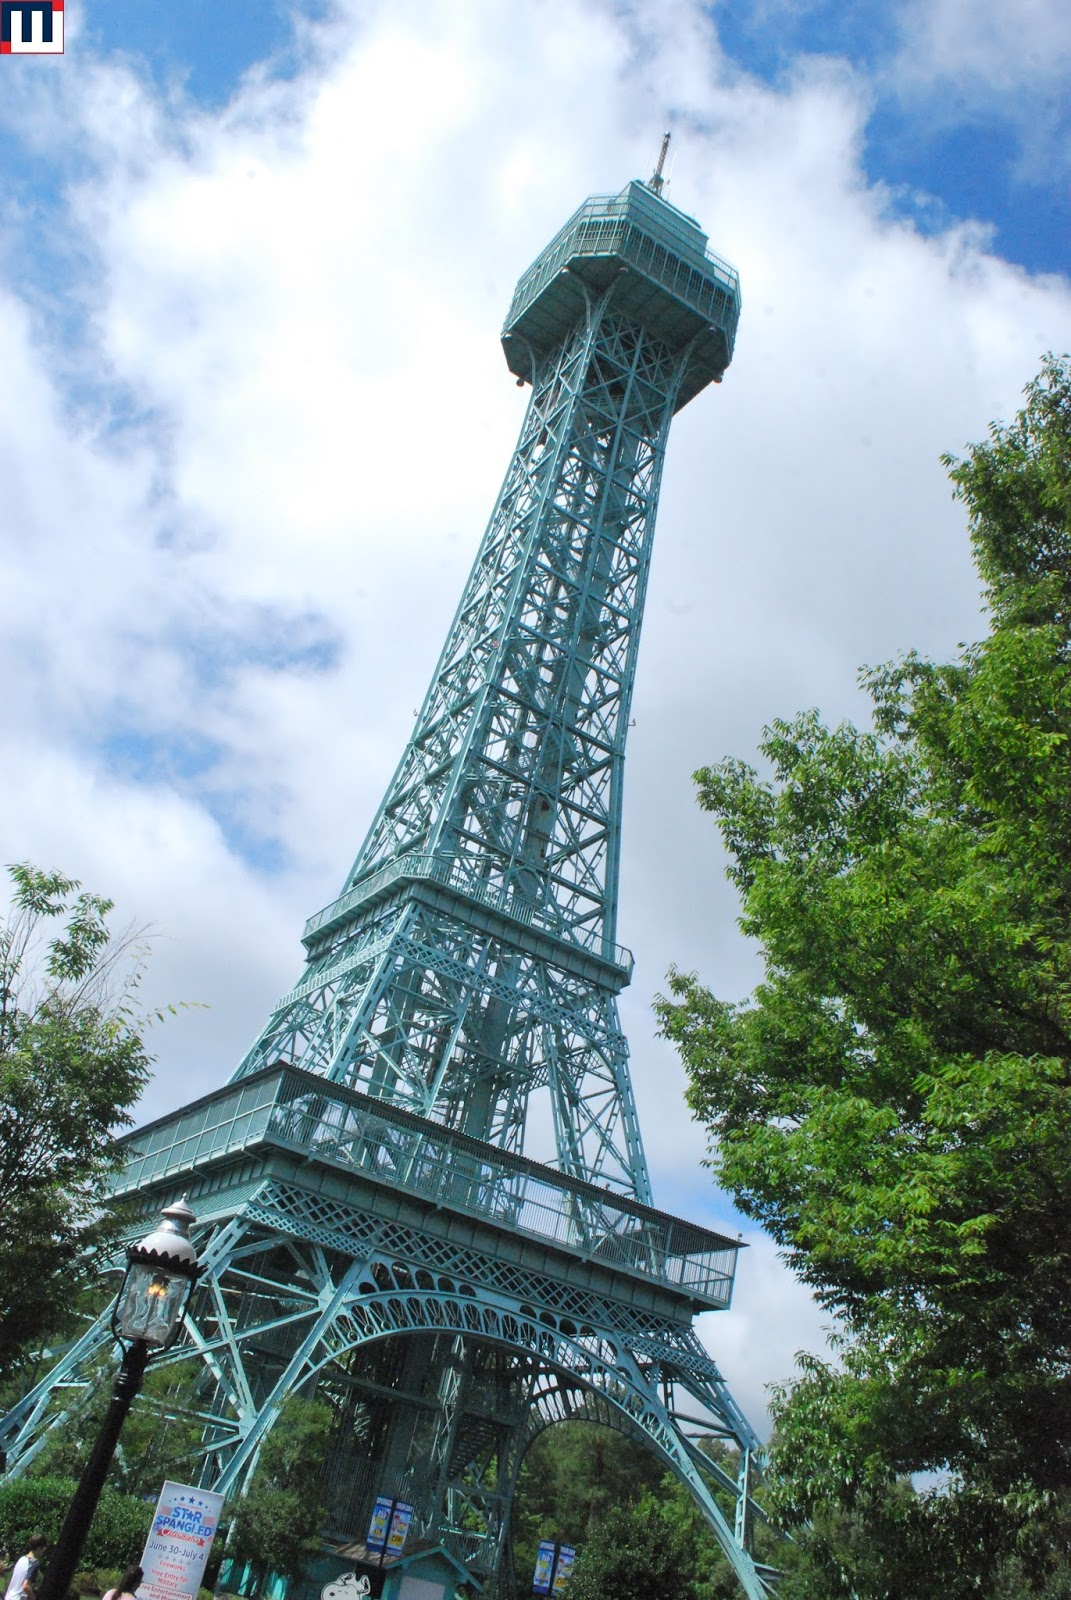 MidwestInfoGuide: Kings Dominion